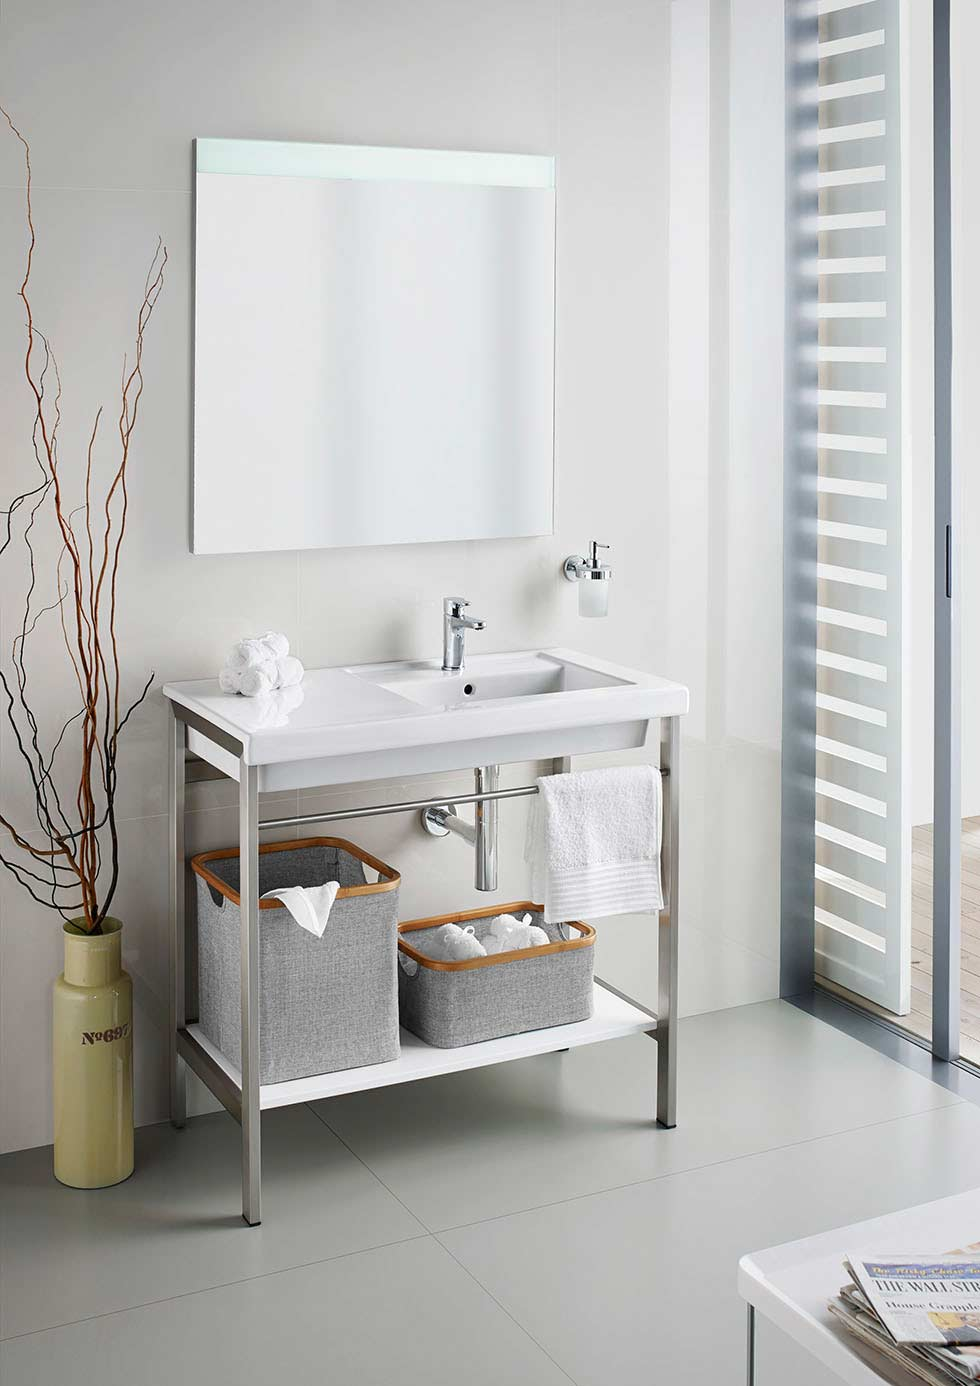 Great bathroom storage ideas - Real Homes